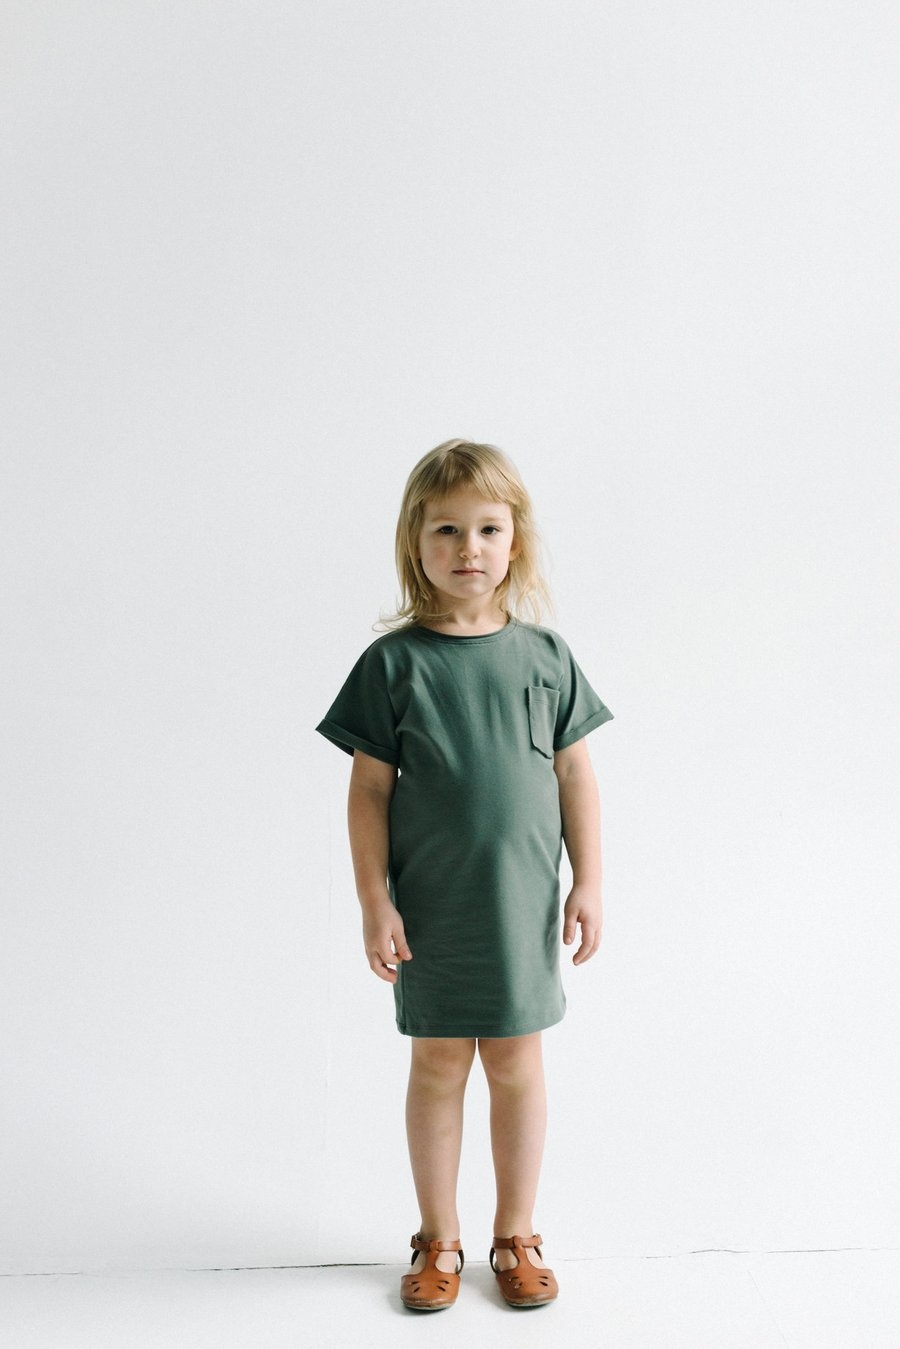 T-shirt dress in forest green